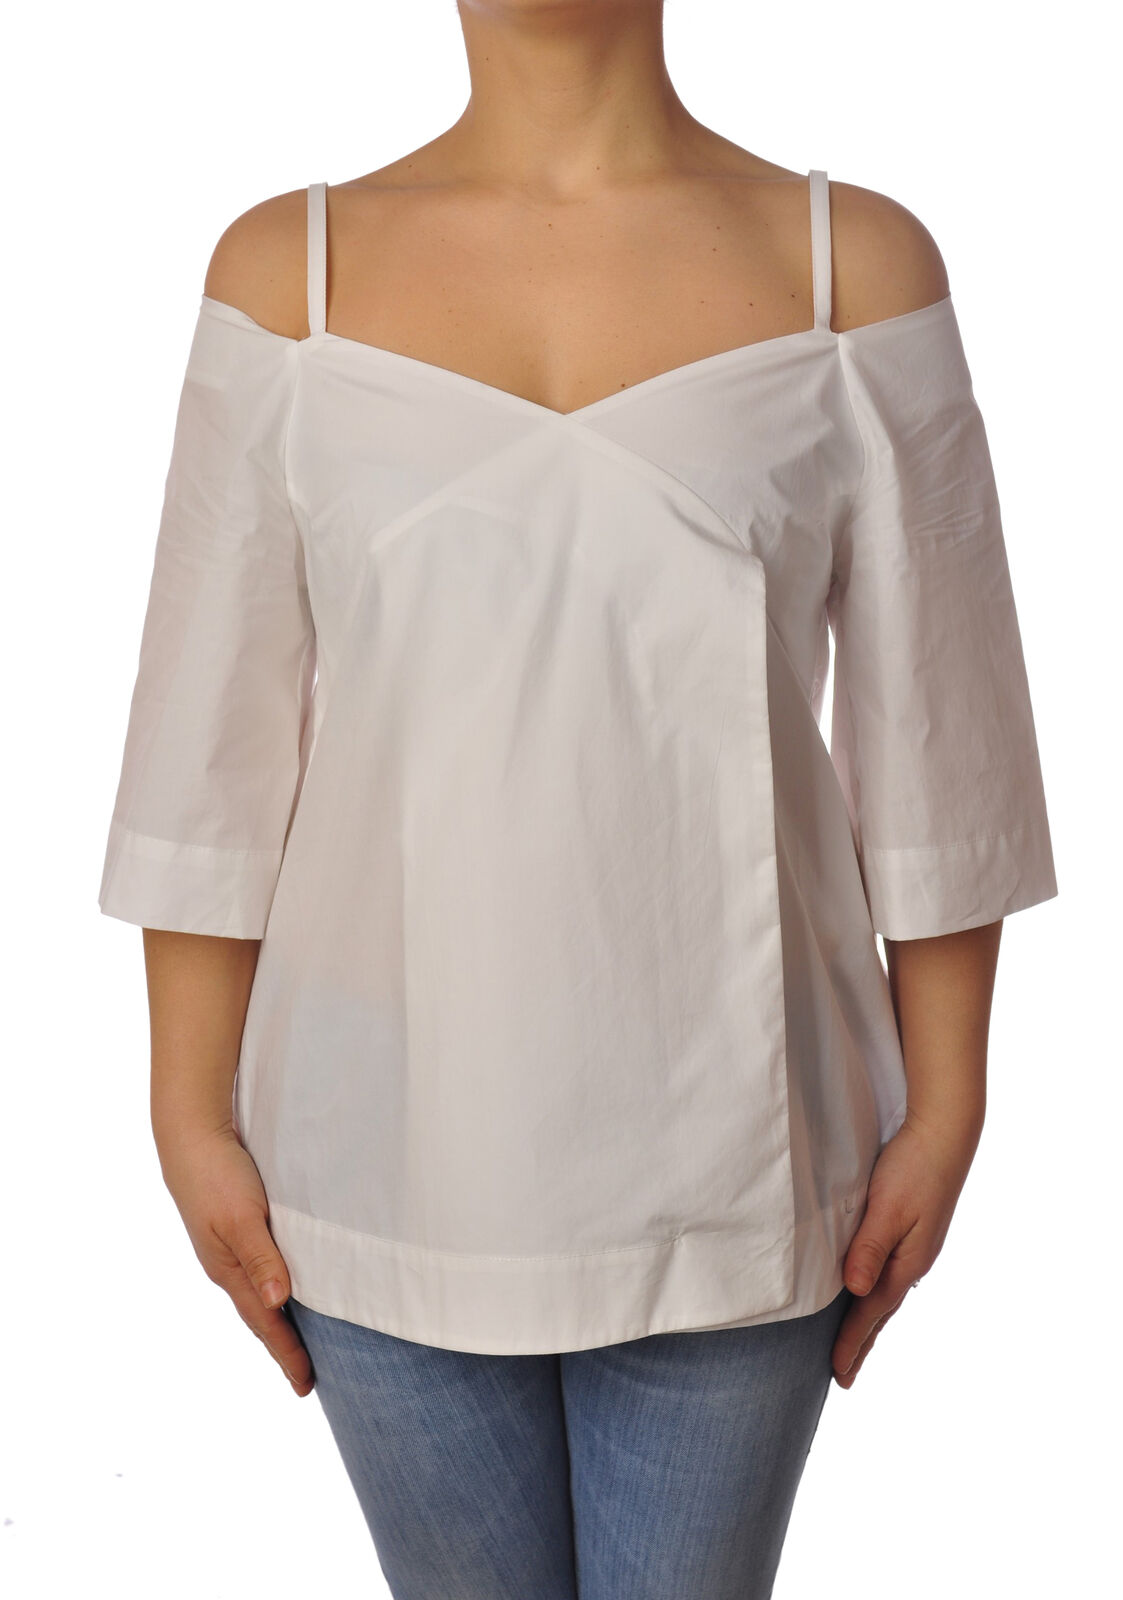 Ottod'ame - Shirts-Blouses - Woman - Weiß - 4958321G184858